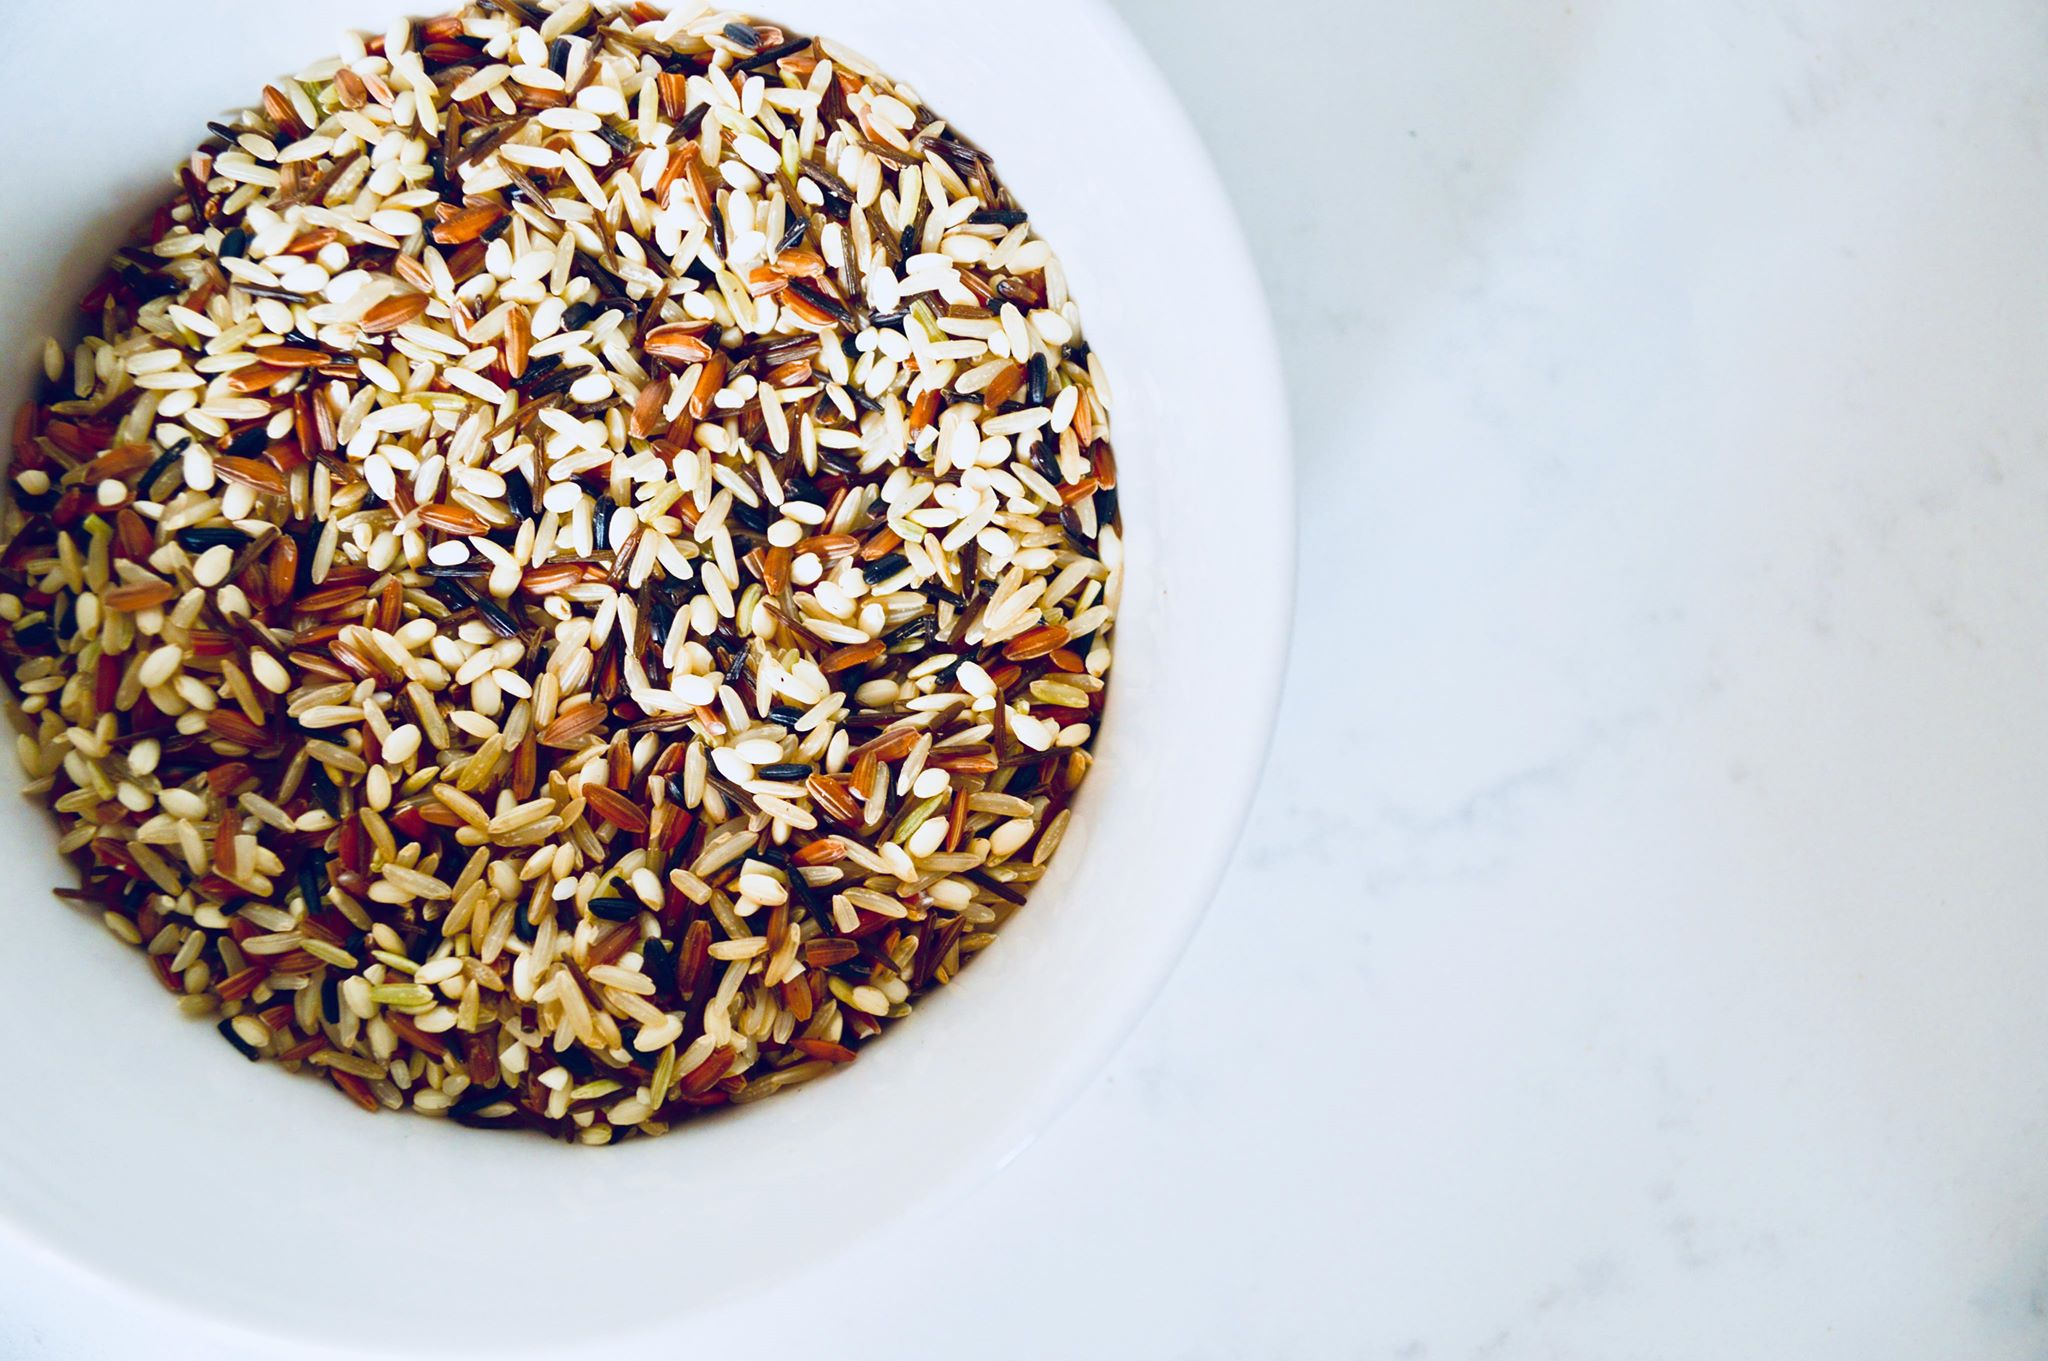 wild rice, modern homestead, natural home, plant based, whole foods diet, vegan family